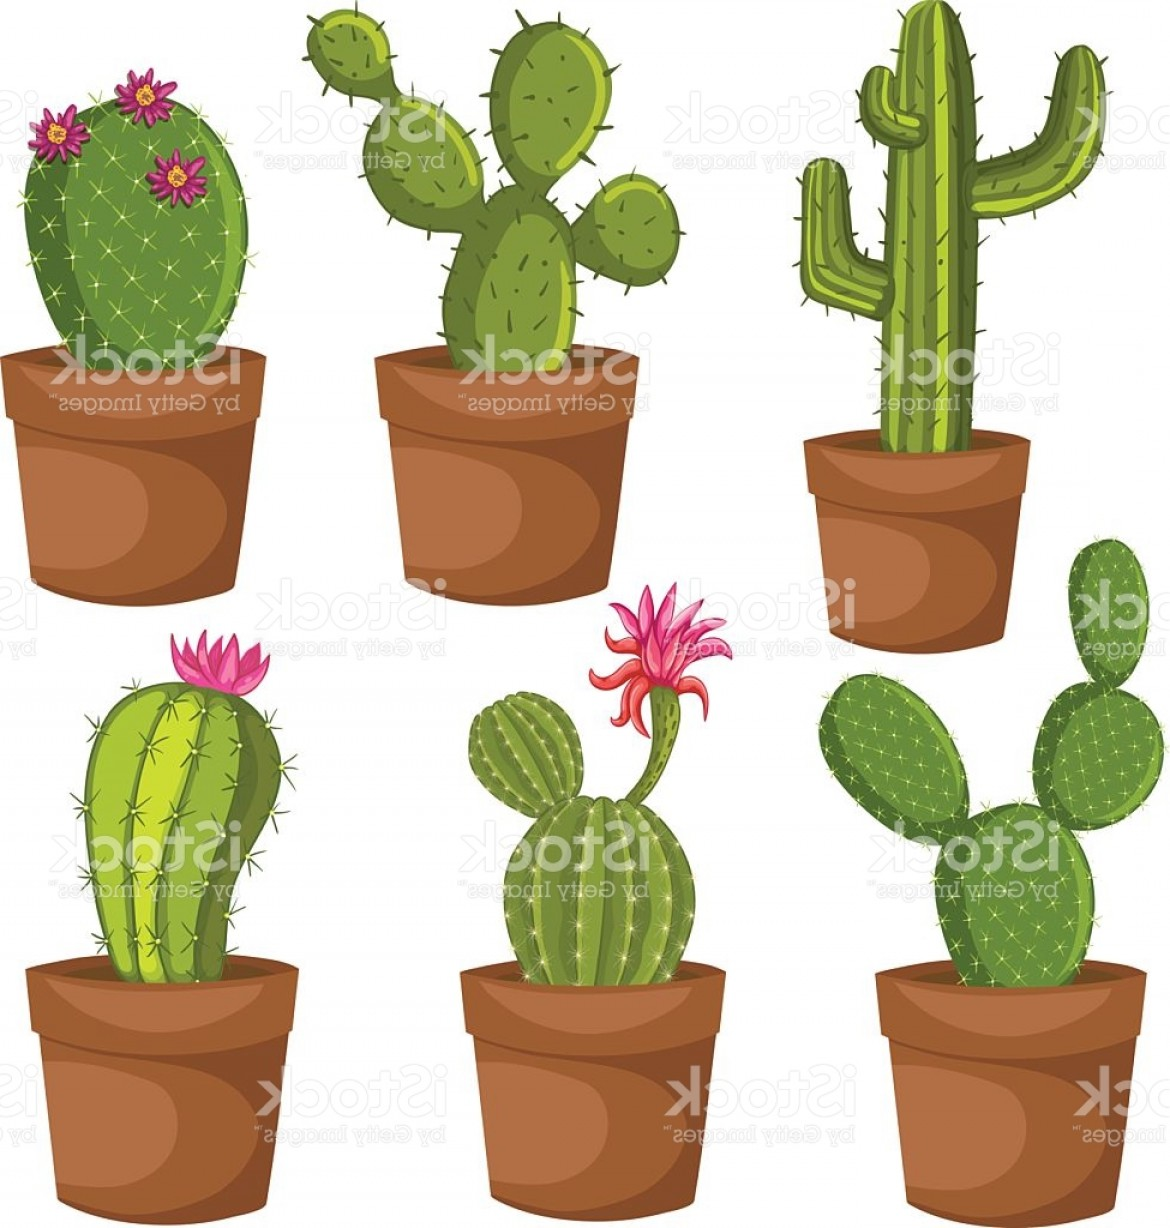 Cactus And Flower Vector: Green Desert Plant Nature Cartoon Cactus Gm